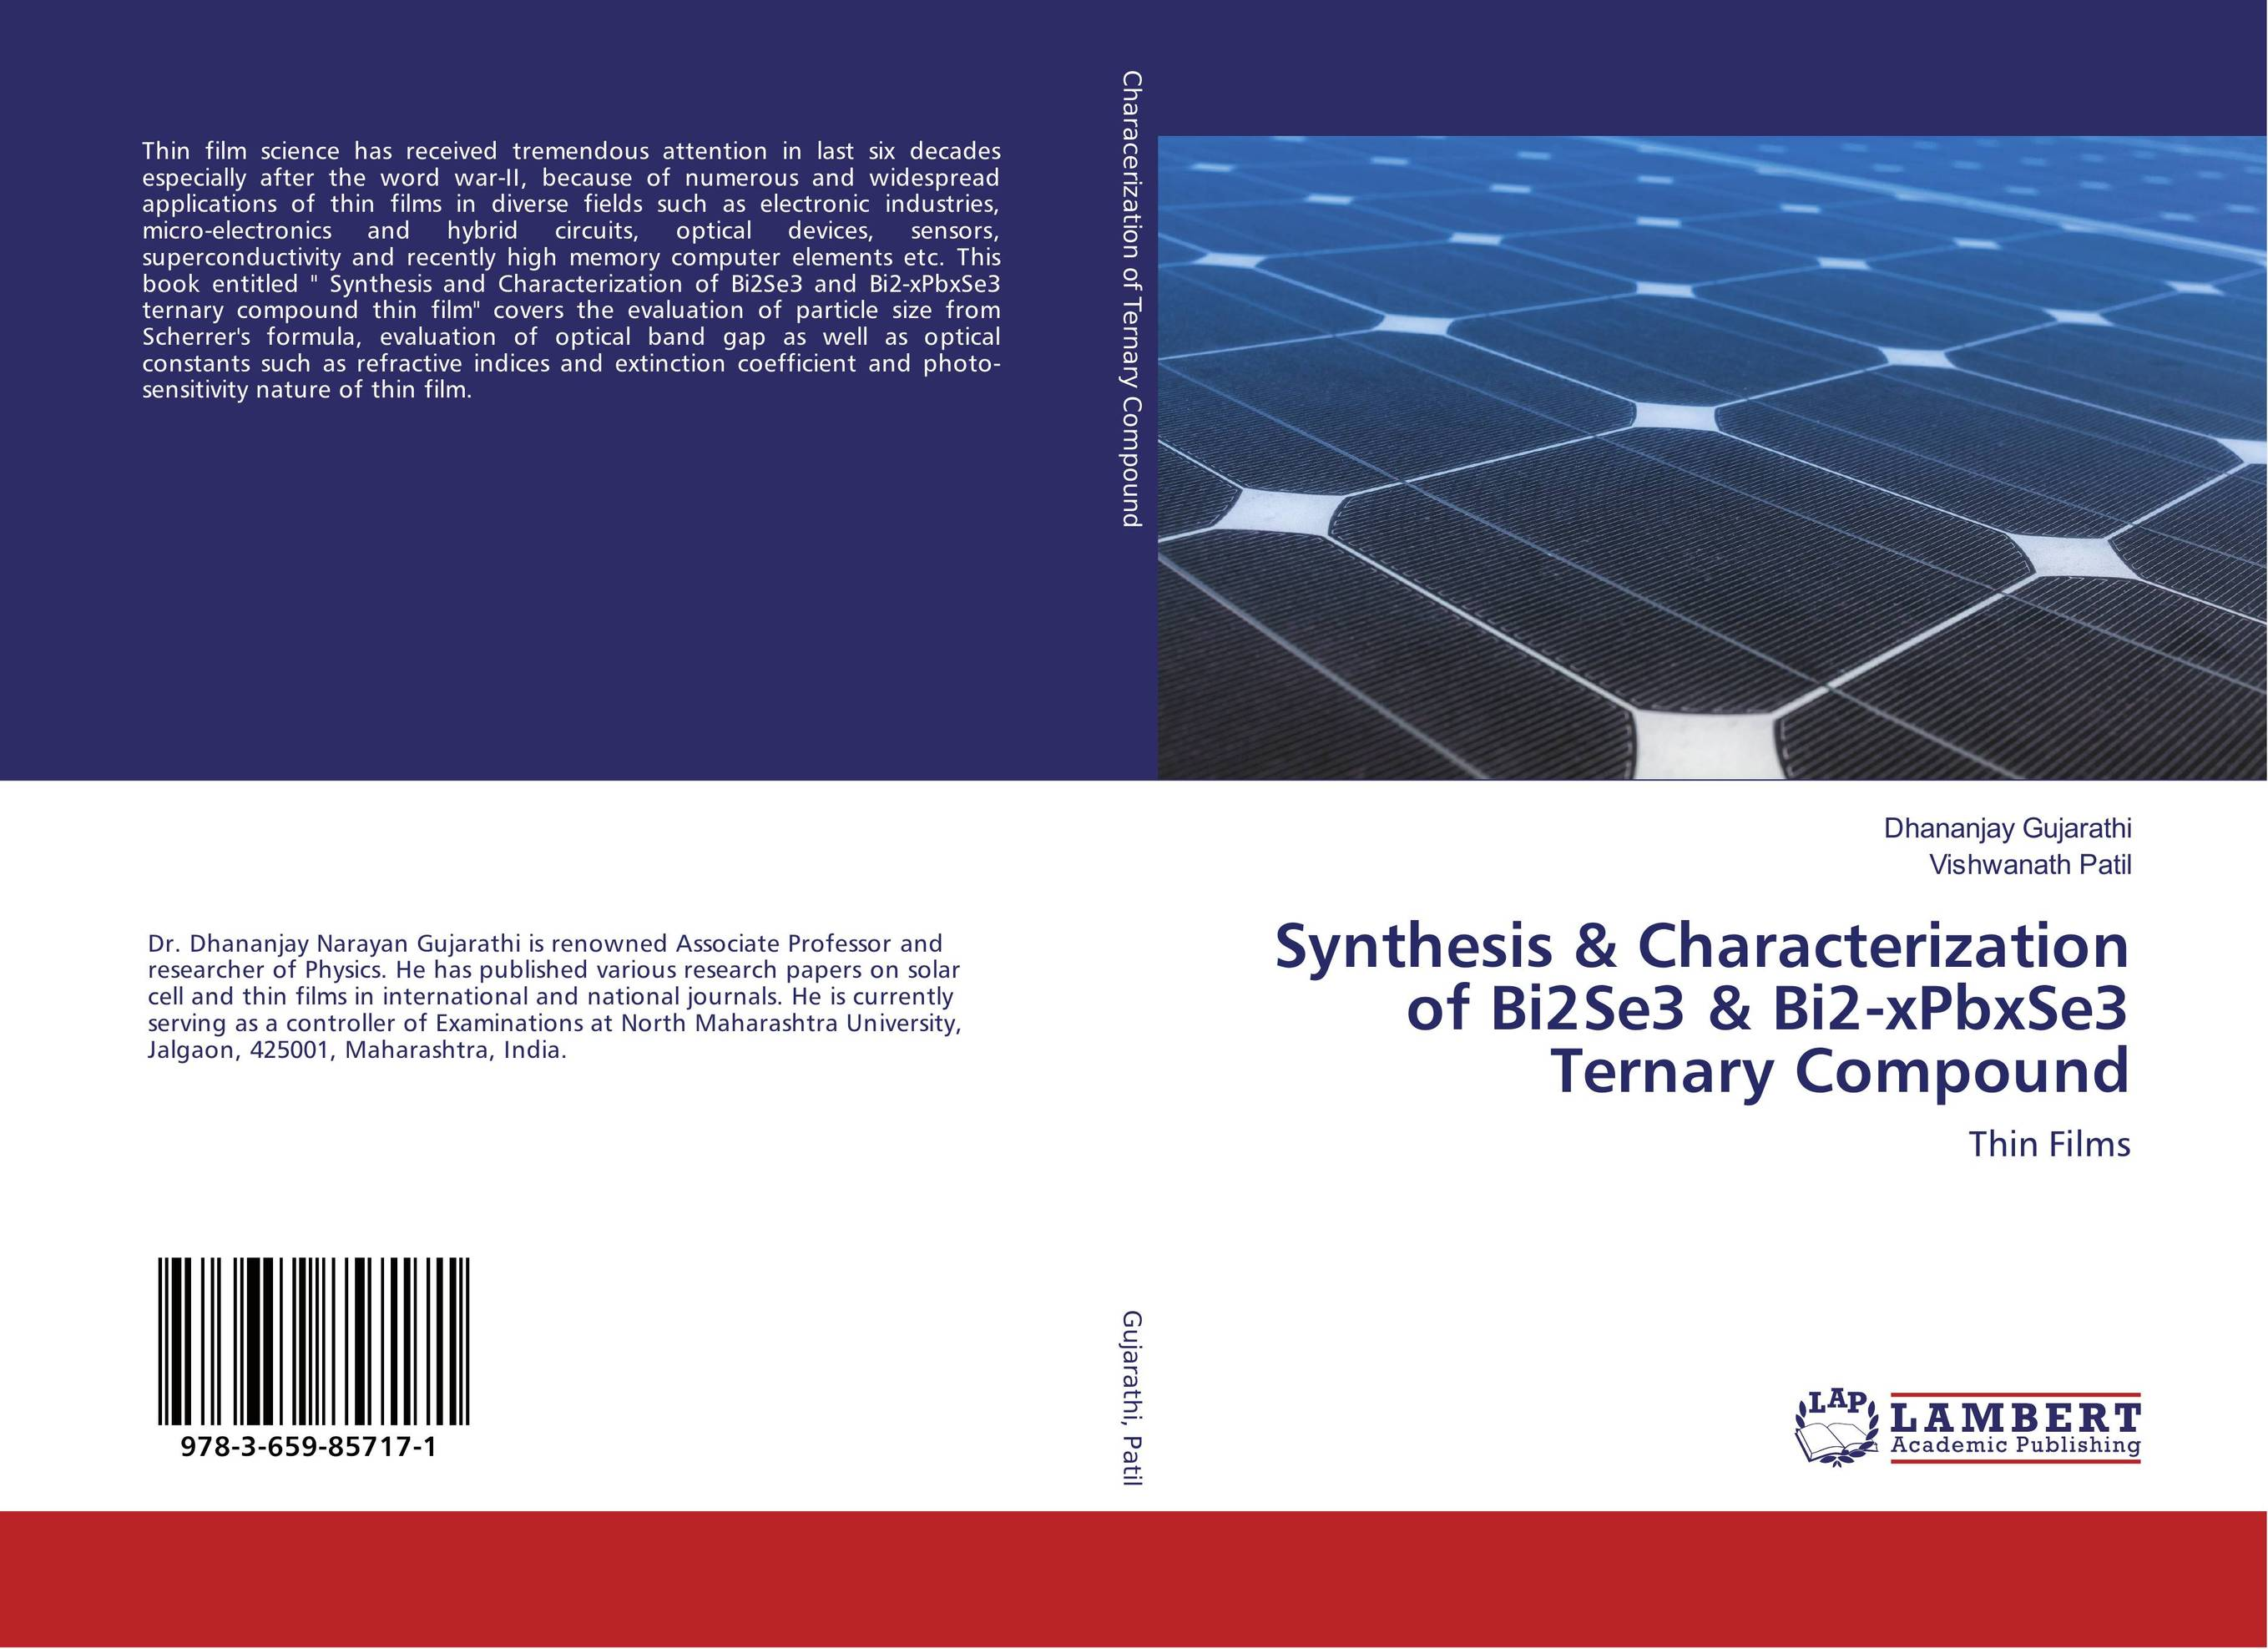 Synthesis & Characterization of Bi2Se3 & Bi2-xPbxSe3 Ternary Compound